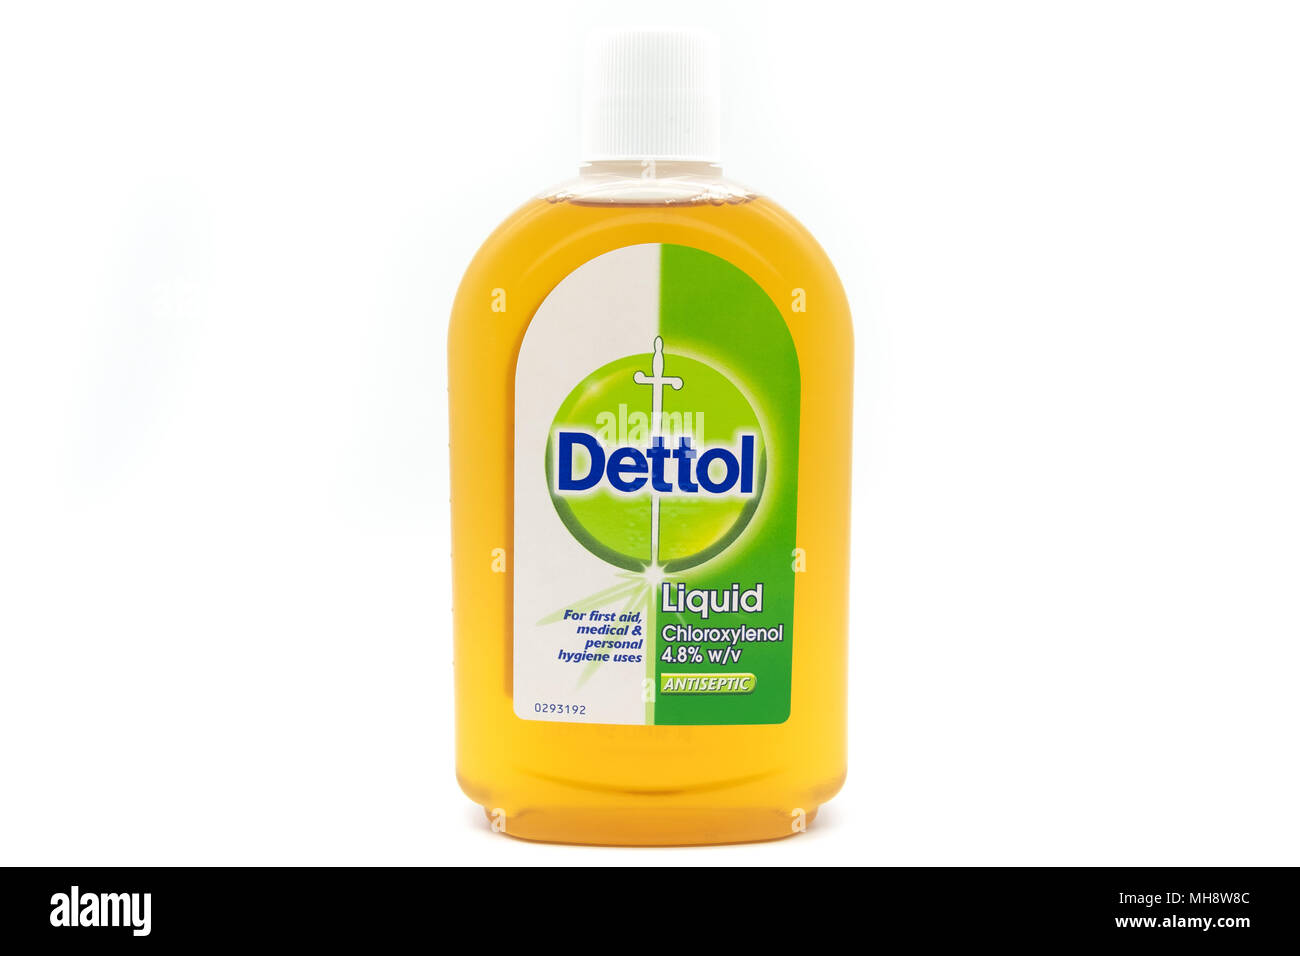 Largs, SCotland, UK - April 25, 2018:                                       A pastic Recyclable Bottle Containing Dettol  in agreement with UK Governm - Stock Image